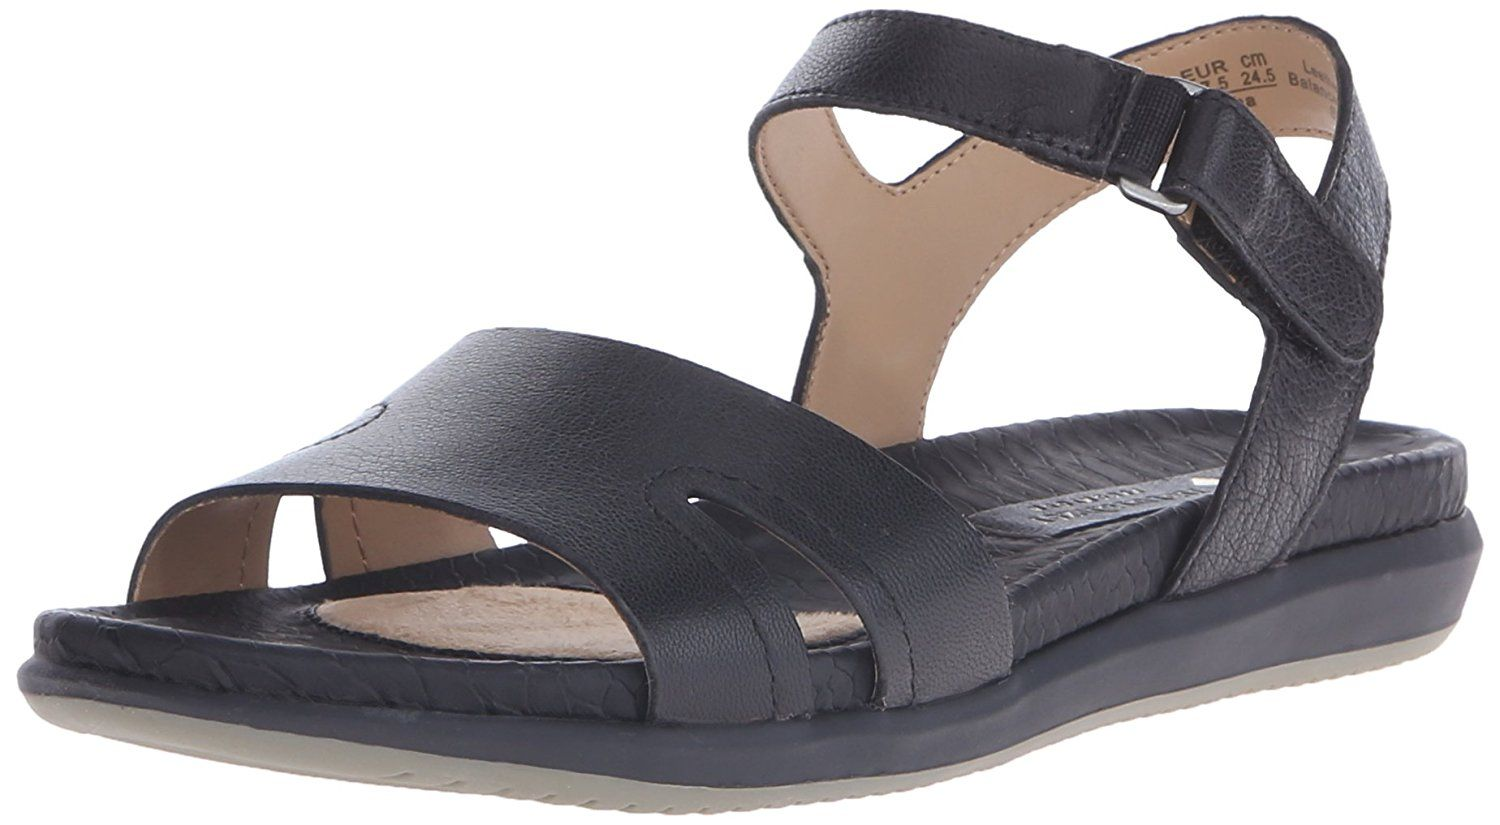 38cc72d4b339 Naturalizer Women s Selma Flat Sandal     Additional details at the pin  image